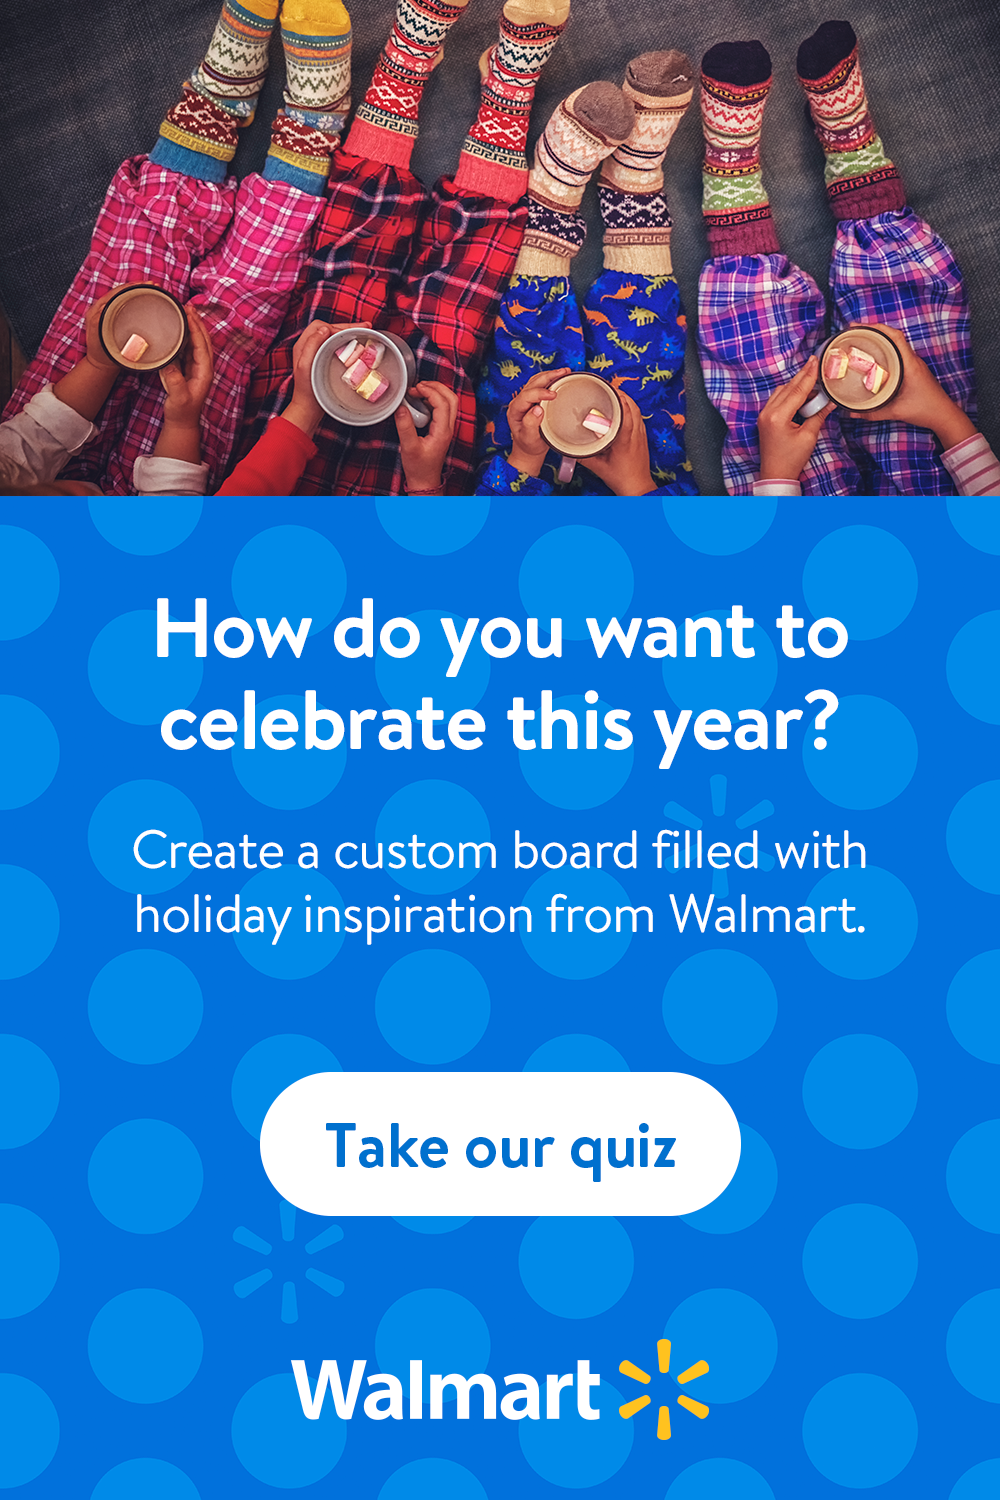 Let's end the year making new holiday memories. Tap the pin to take our quiz & ​let Walmart help you plan the perfect holiday moment for your family with personalized ​gift ideas, recipes & inspiration!​